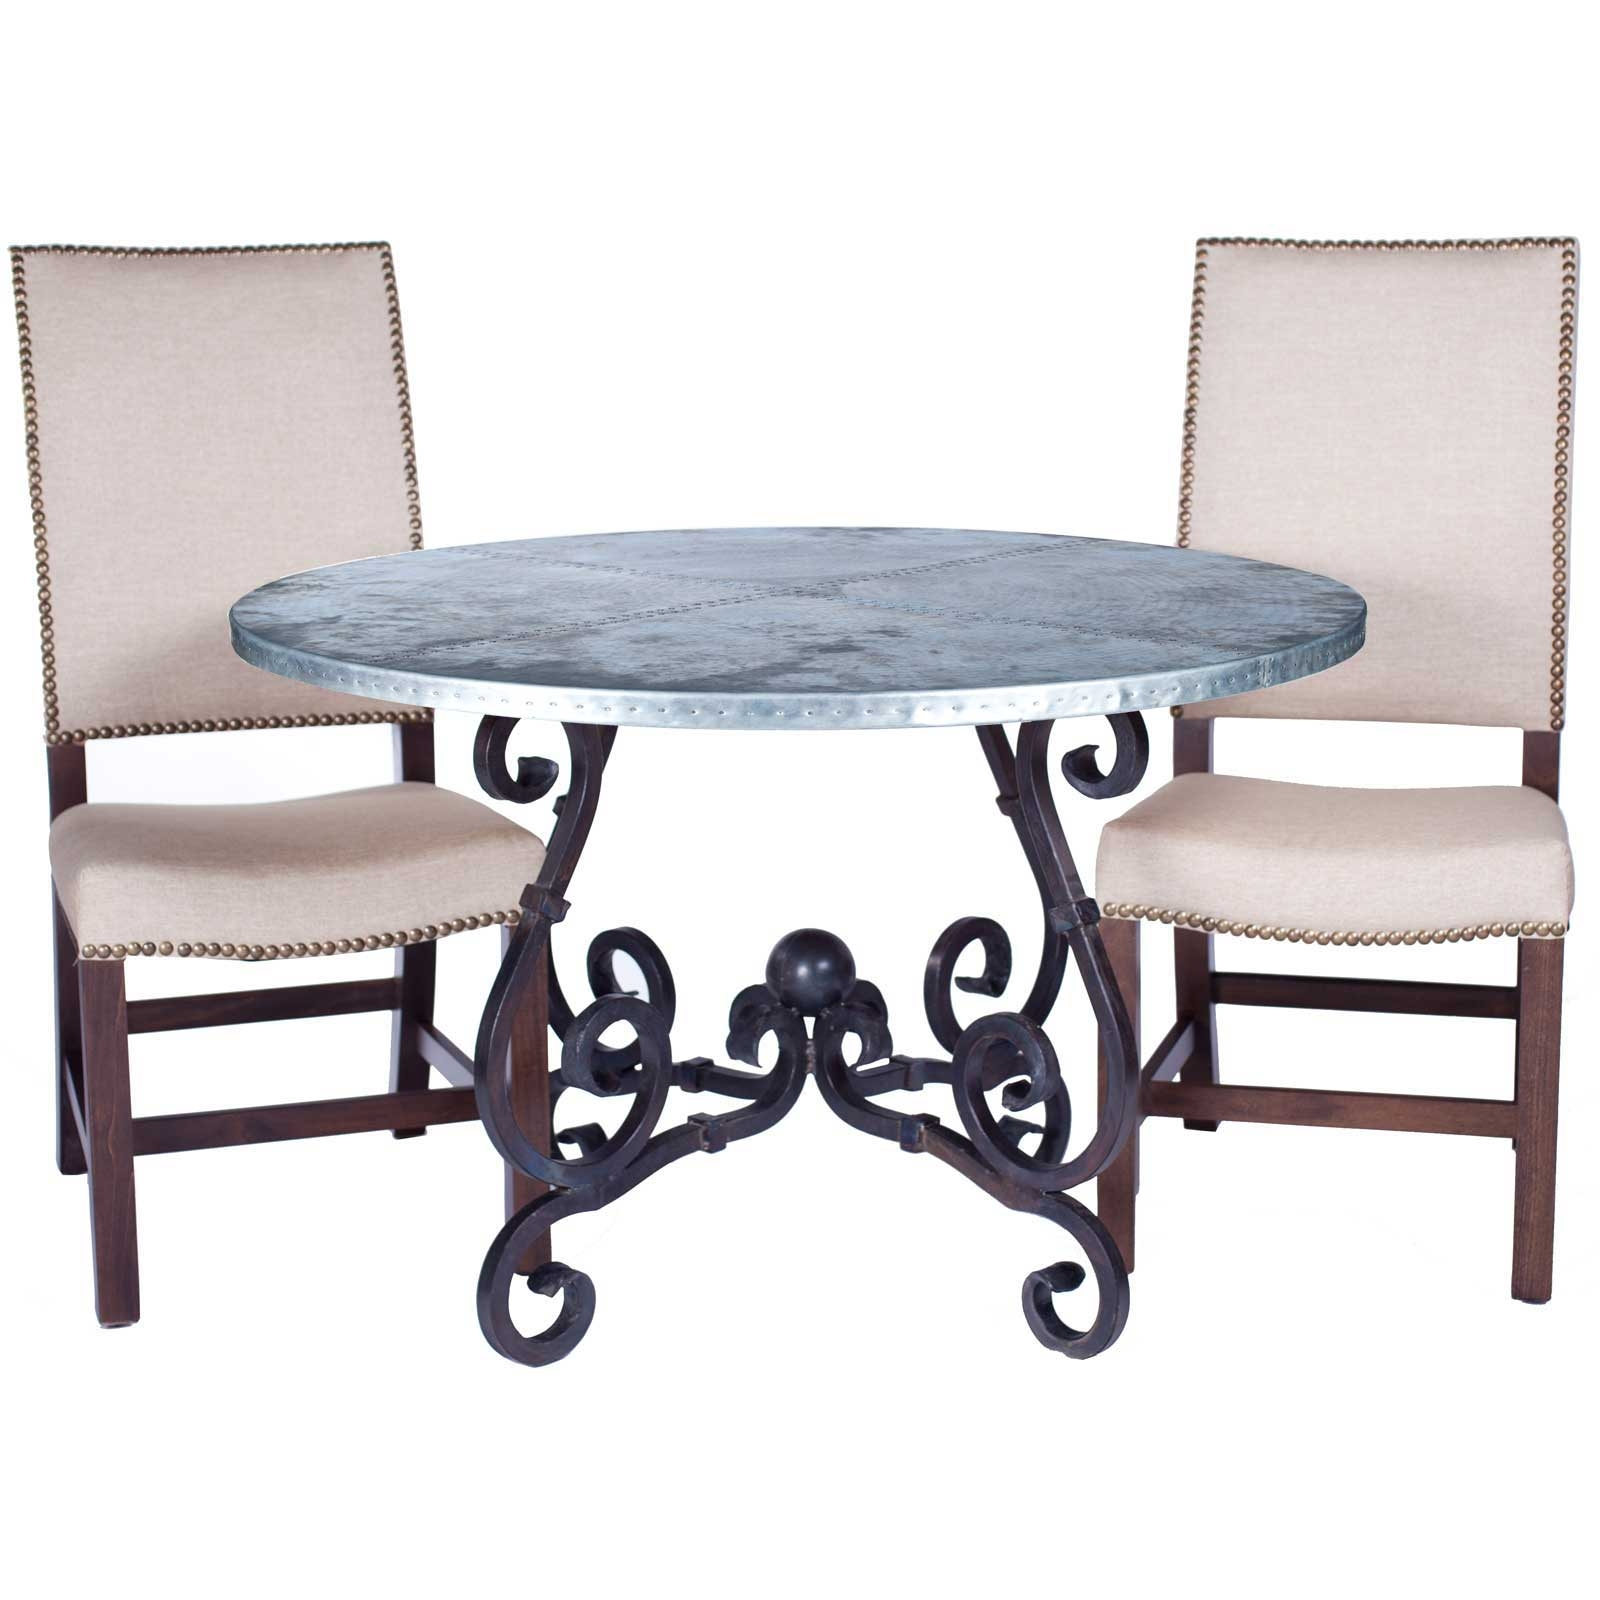 French Iron Dining Table with 72-in. Round Hammered Zinc Top